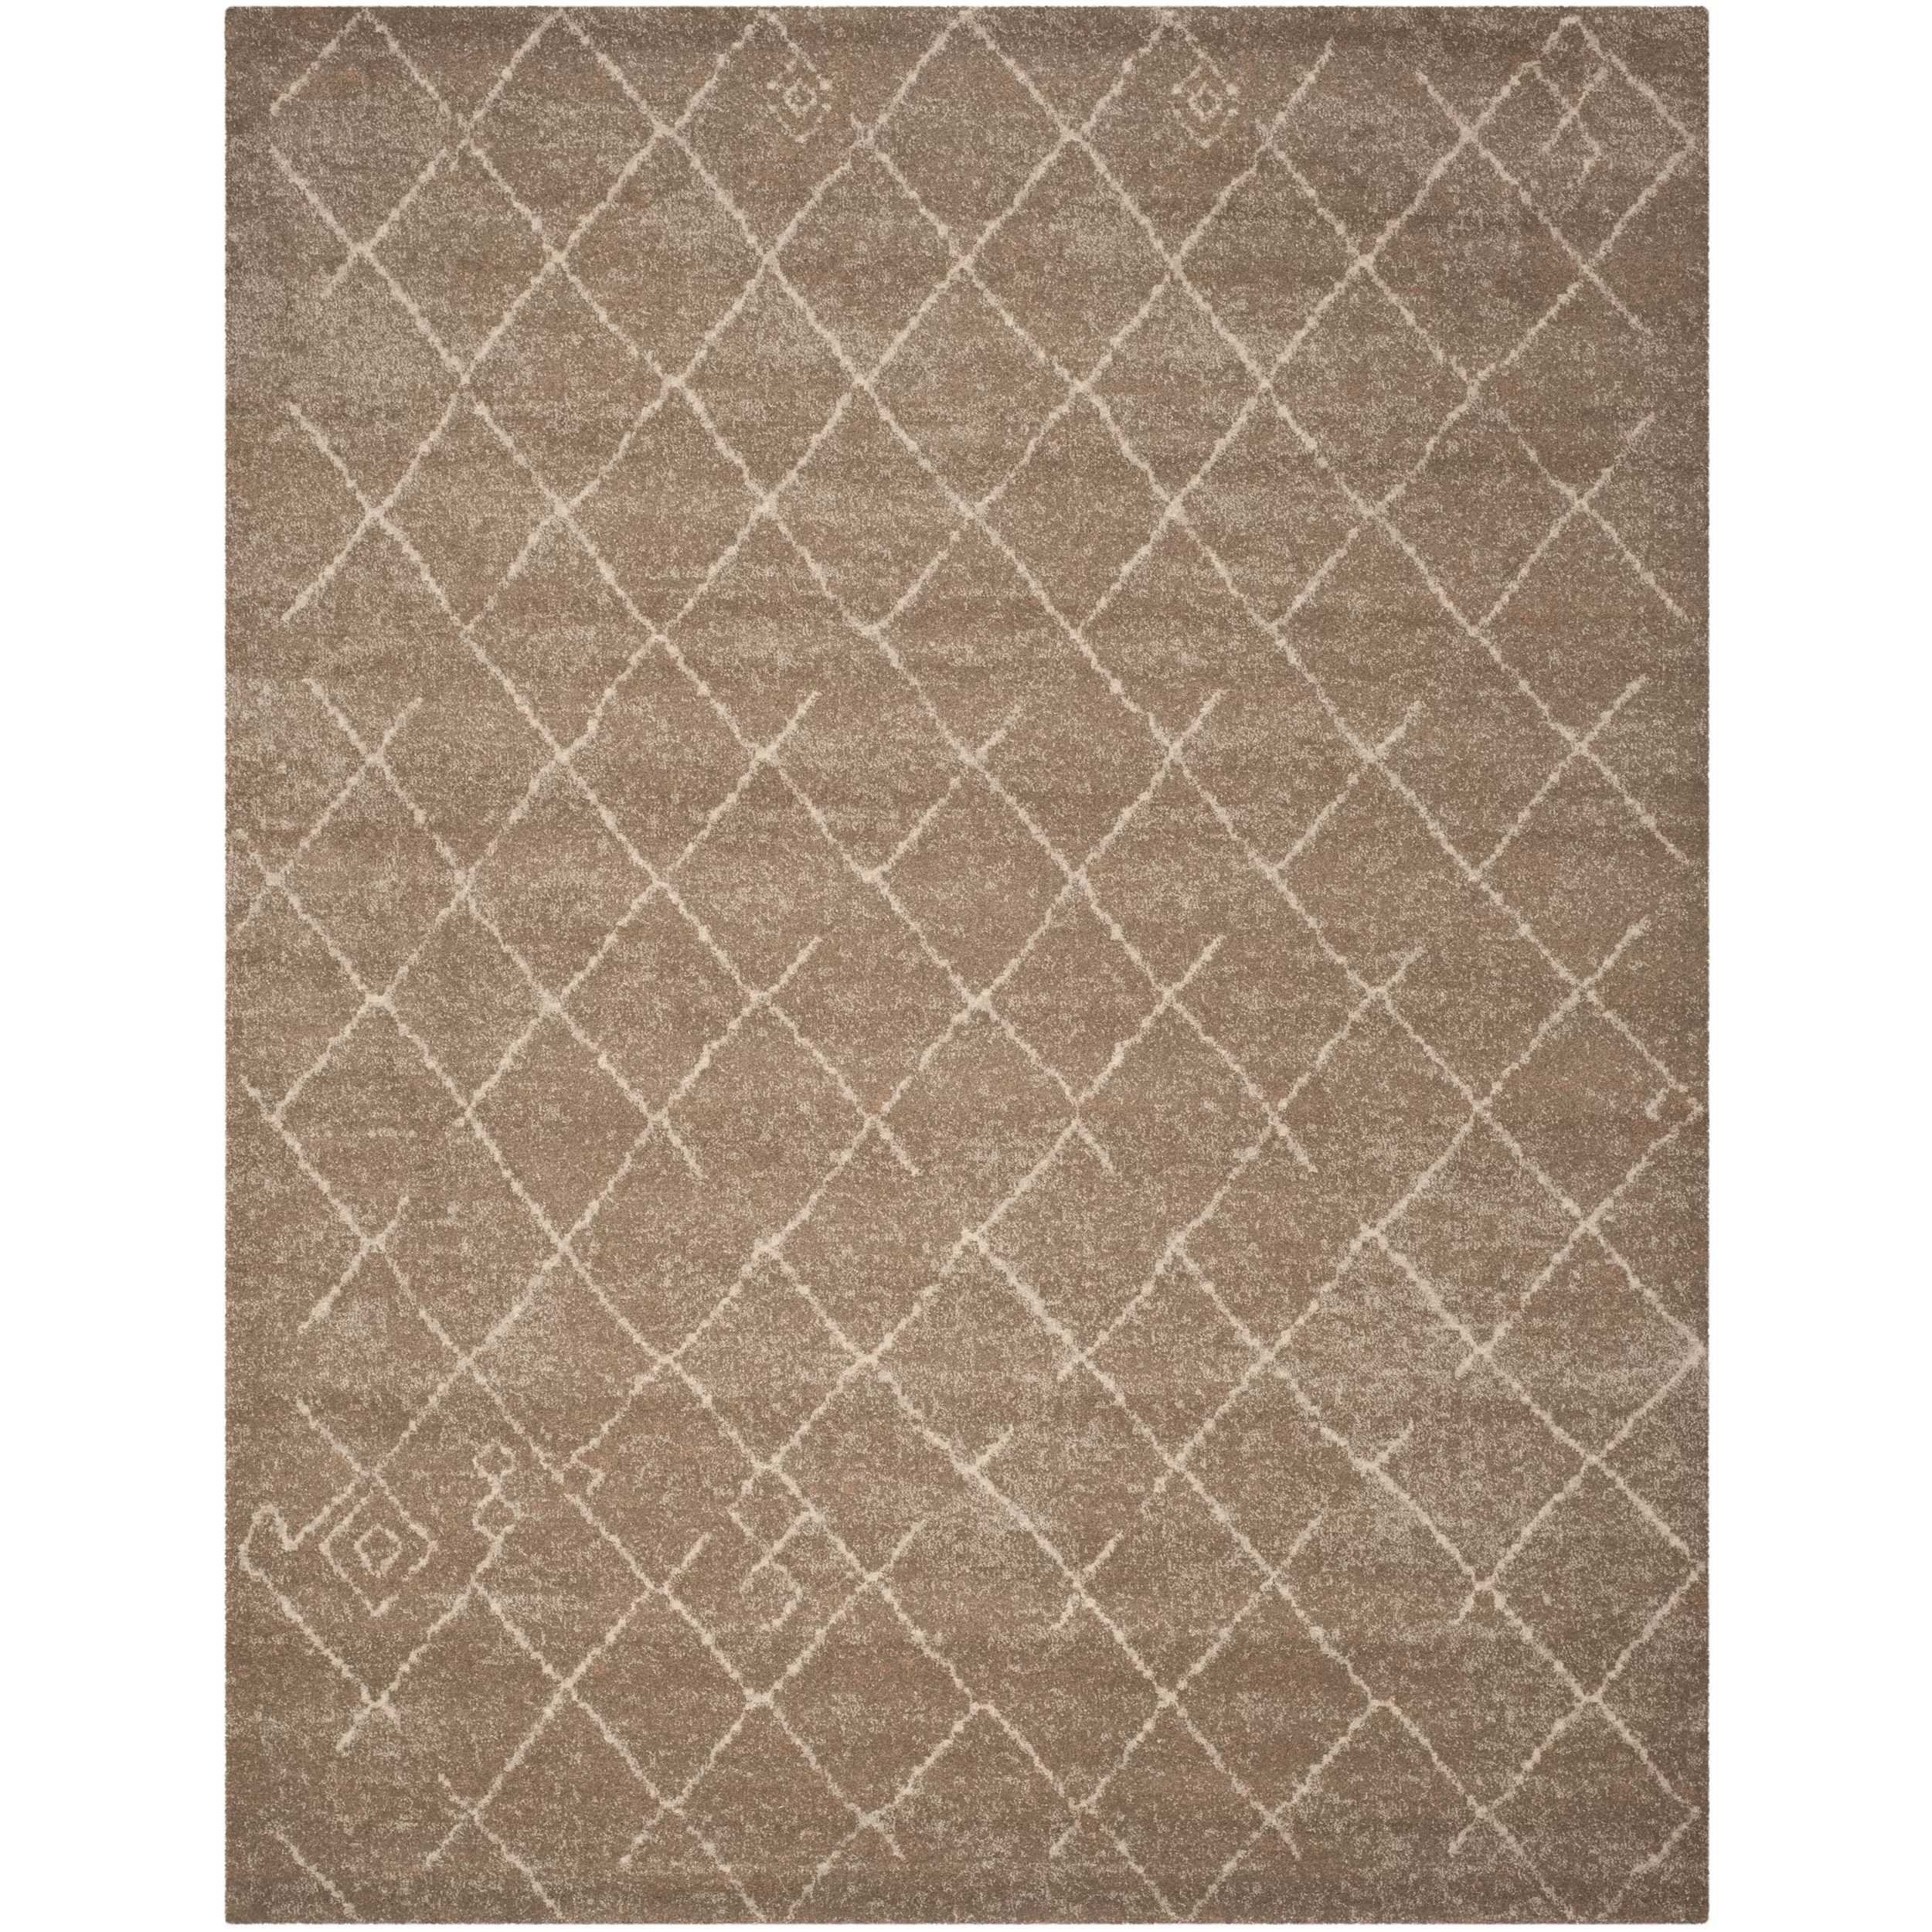 10x14 Rug Safavieh Tunisia Brown Area Rug And Reviews Wayfair